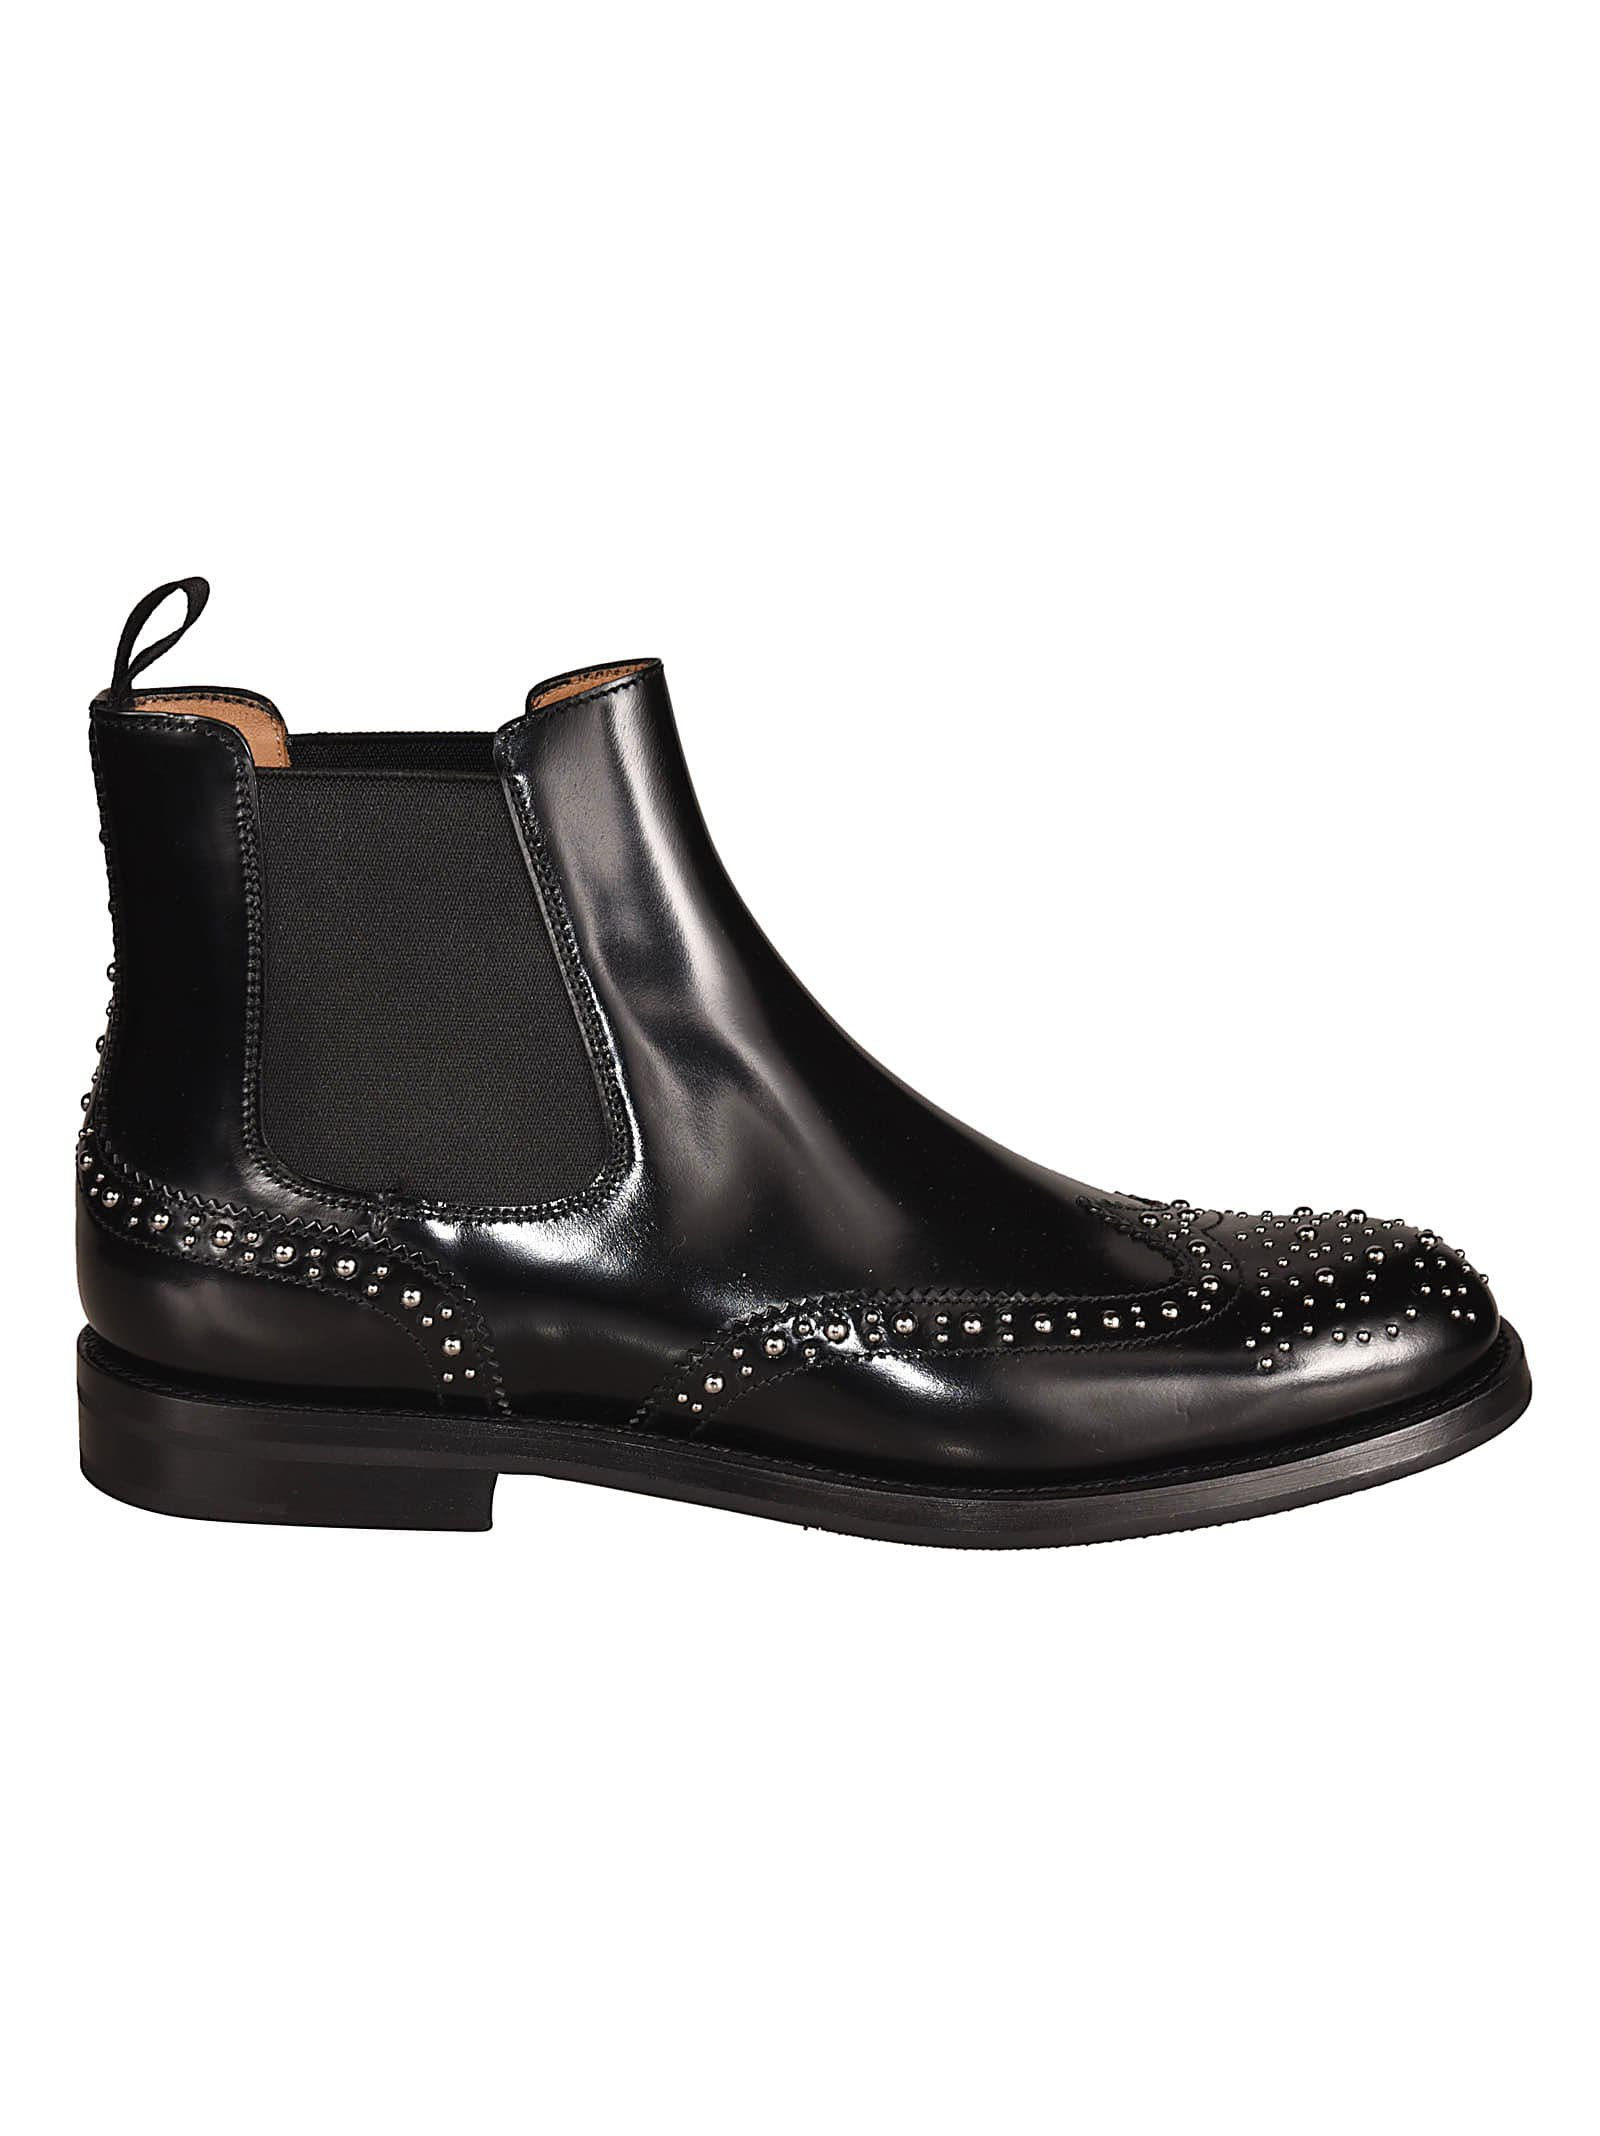 Churchs Studded Ankle Boots